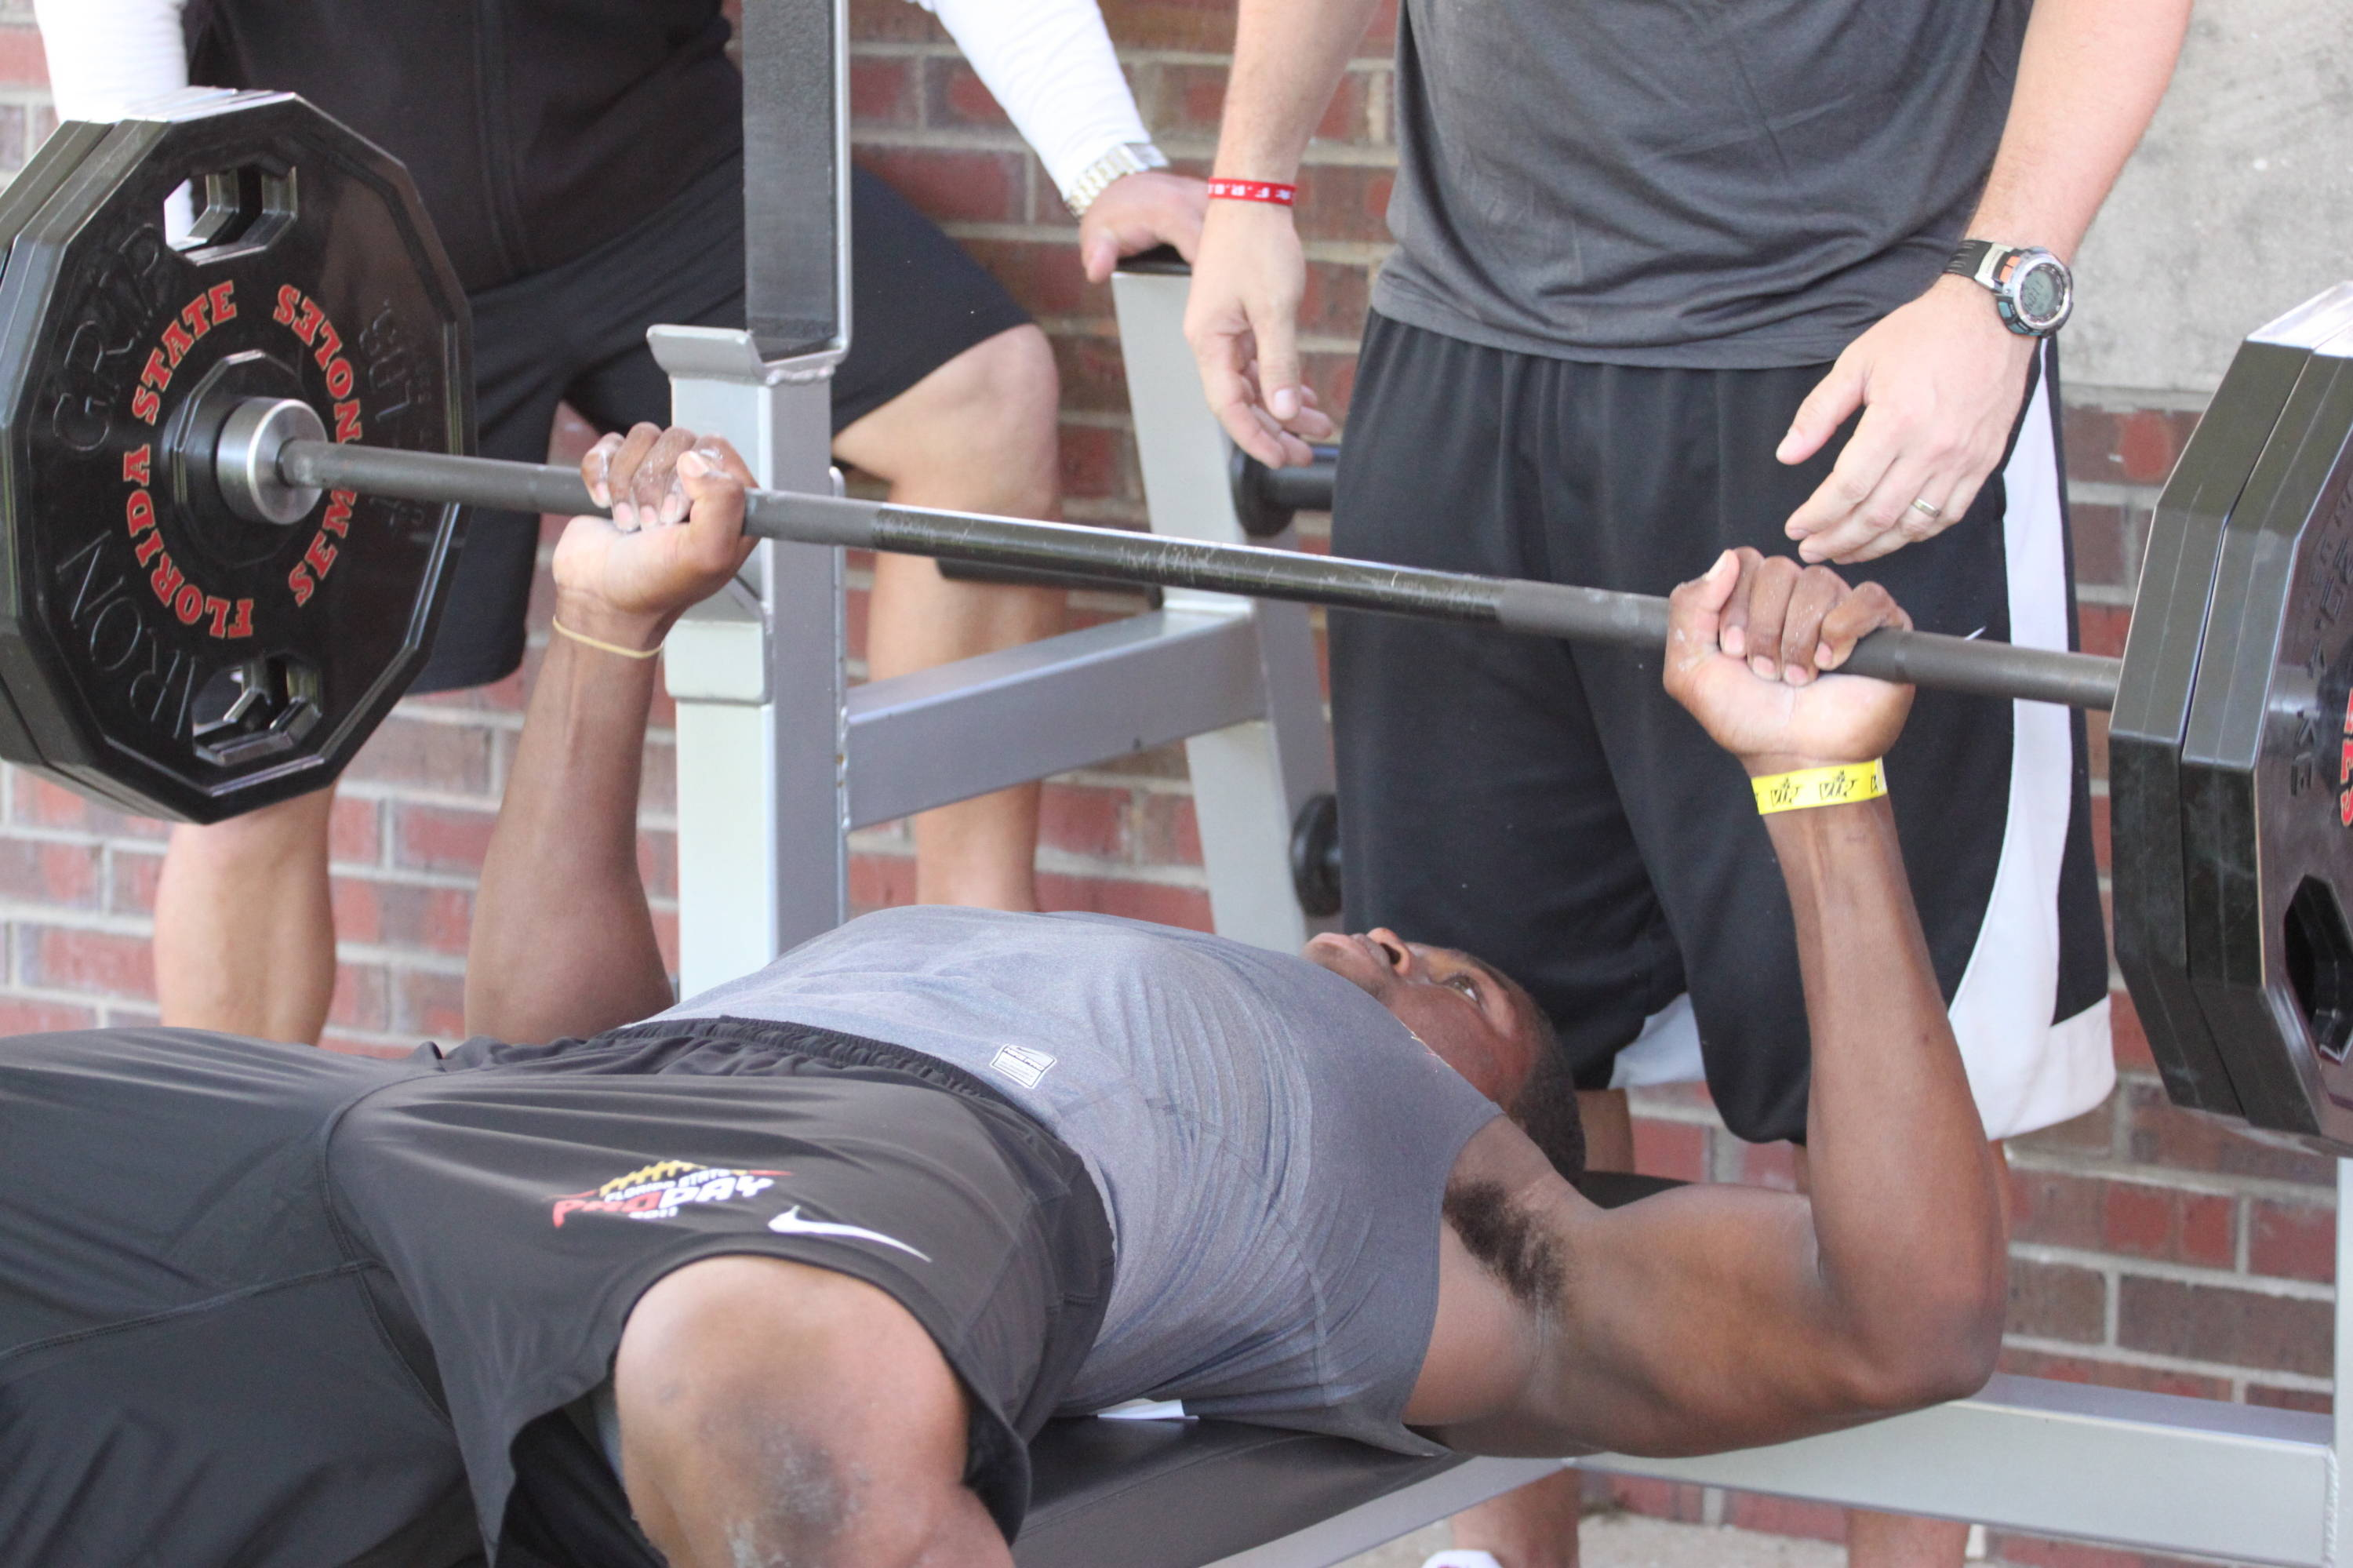 Mister Alexander on the bench press with 225 lbs. on the bar.